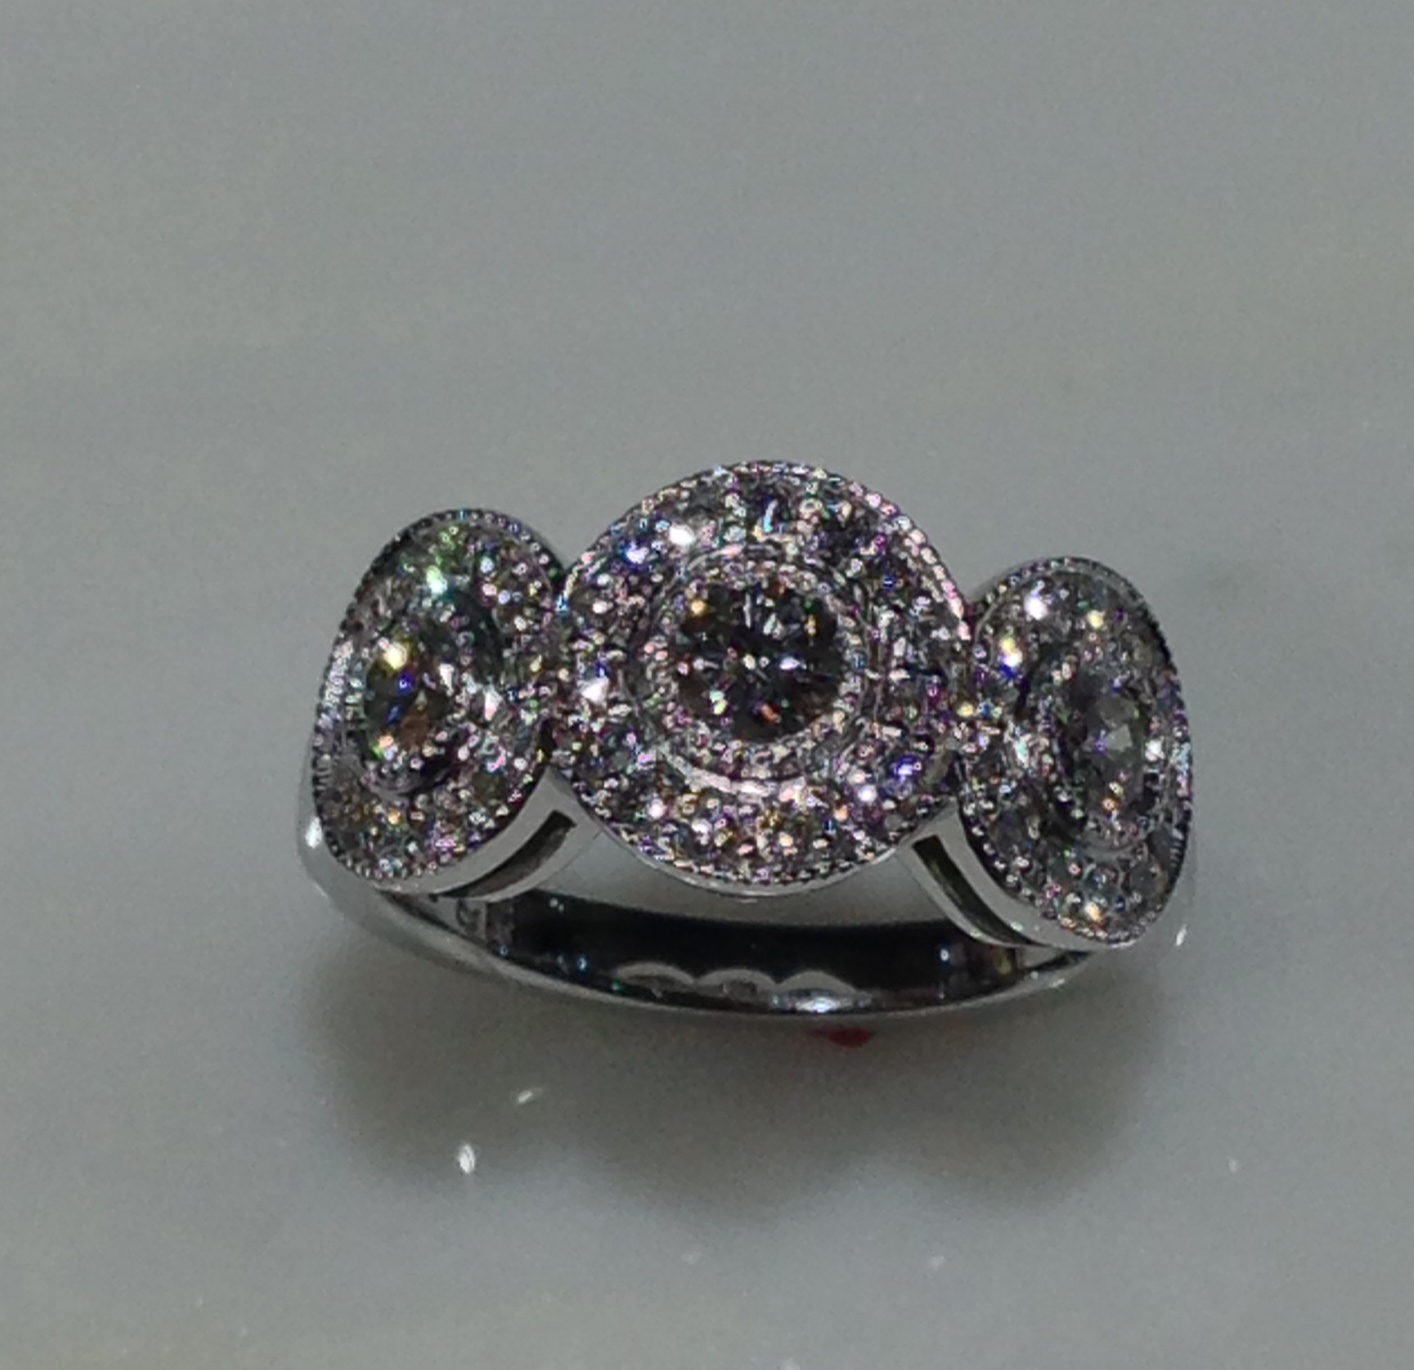 unique-antique-vintage-three-stone-diamond-halo-engagement-ring-top-view-craft-revival-jewelry-store-grand-rapids